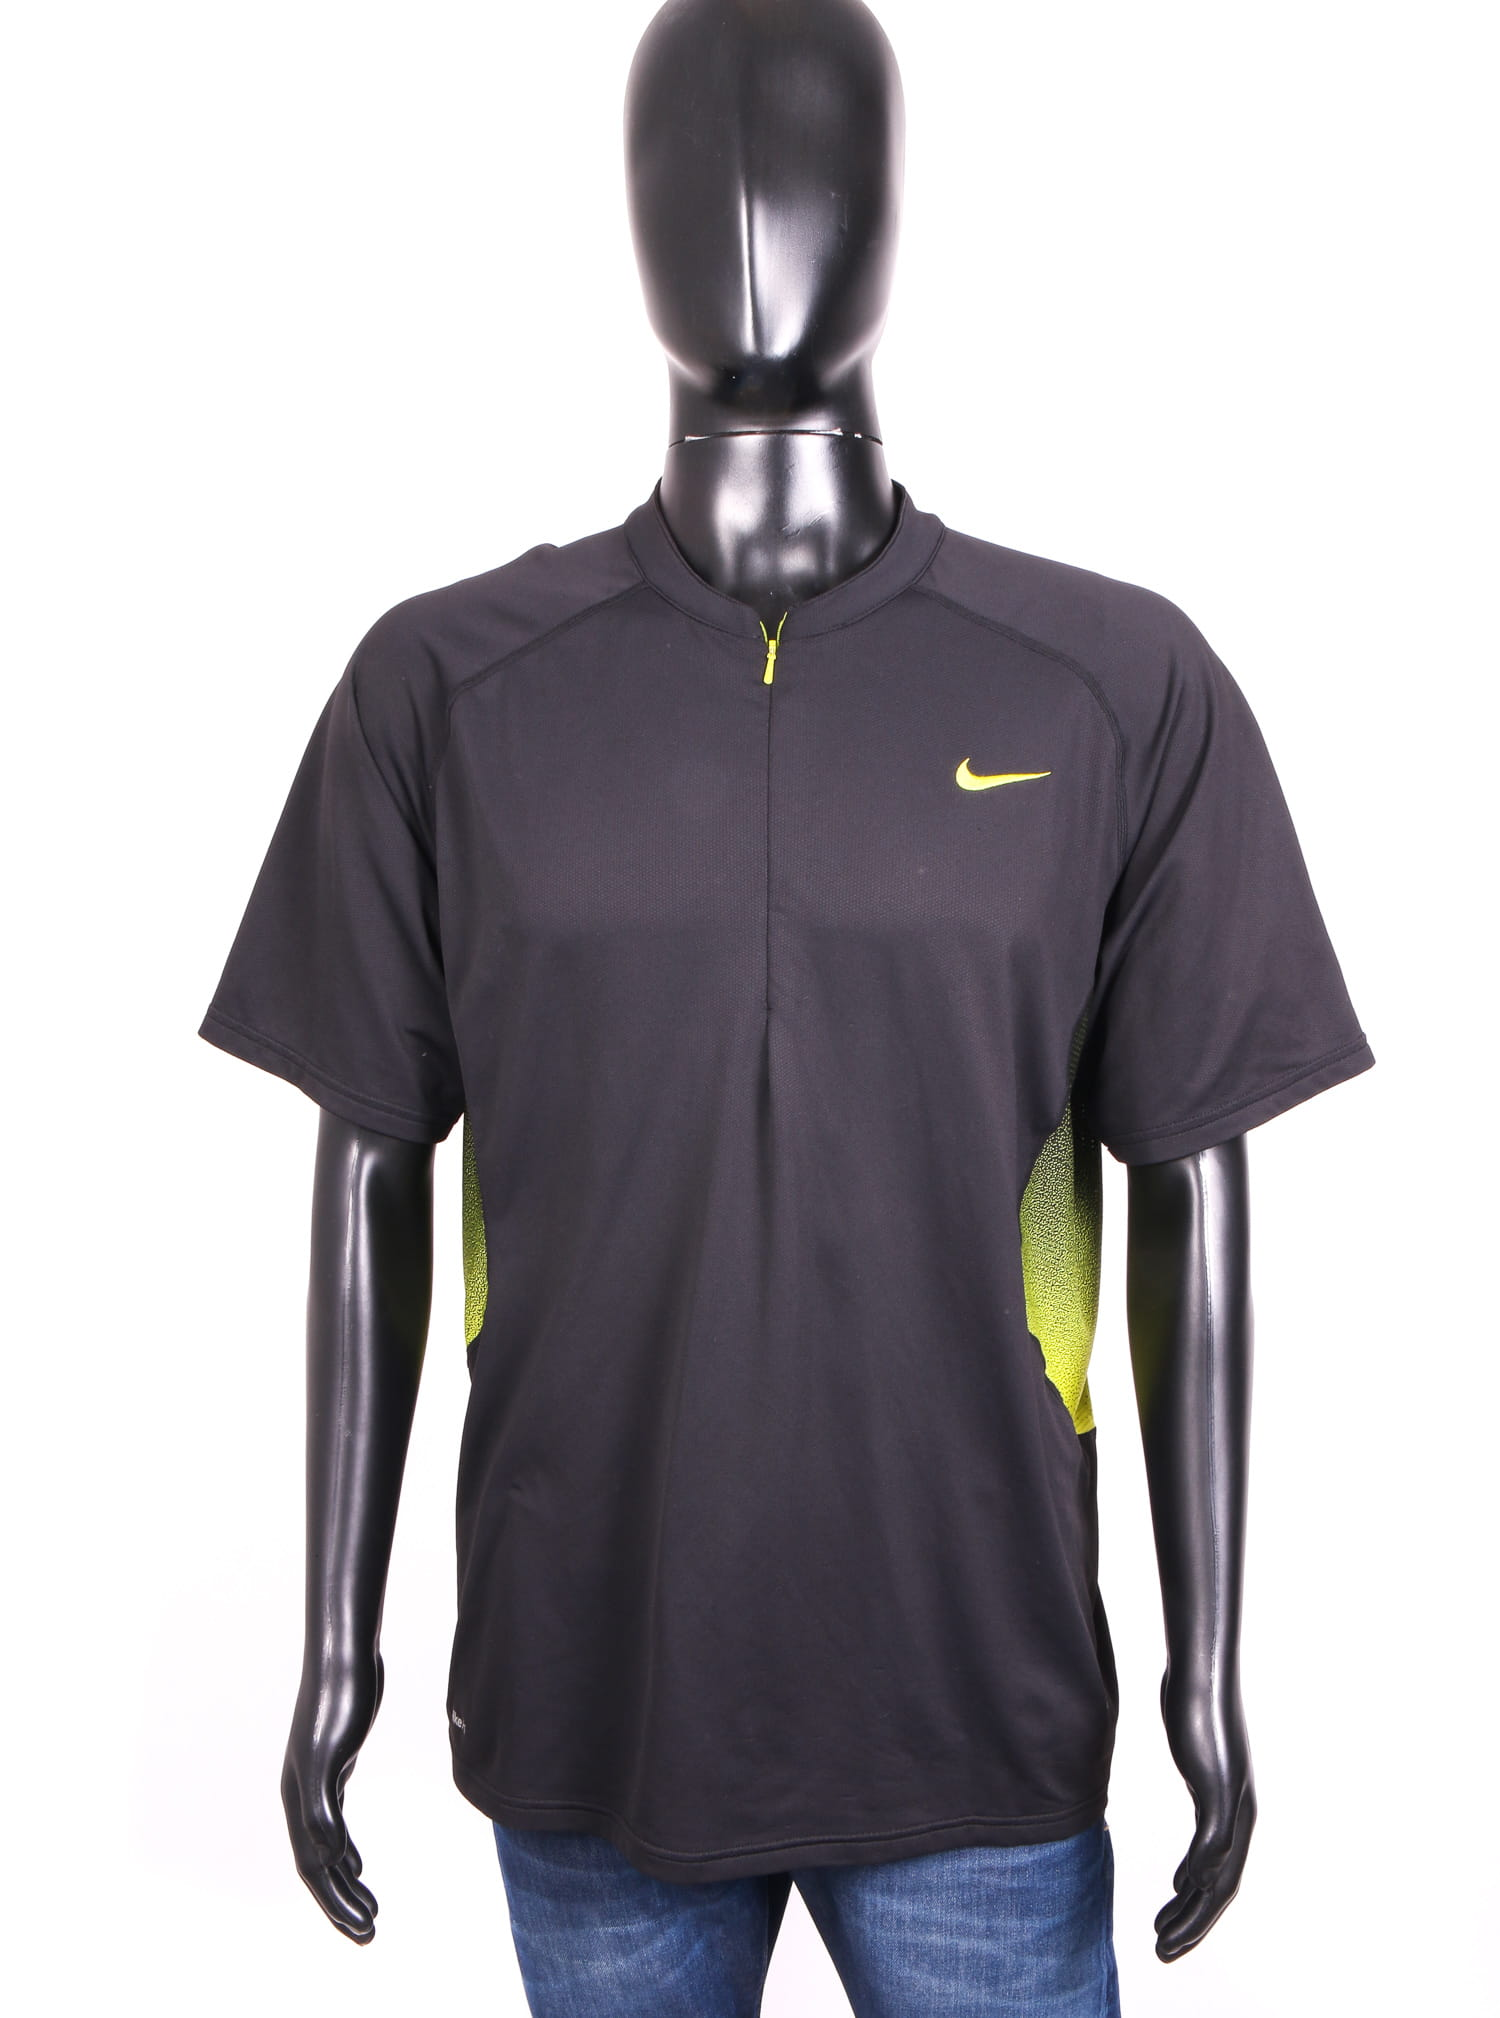 Details About Nike Dri Fit Mens Shirt Thermoactive Zip Up Size L